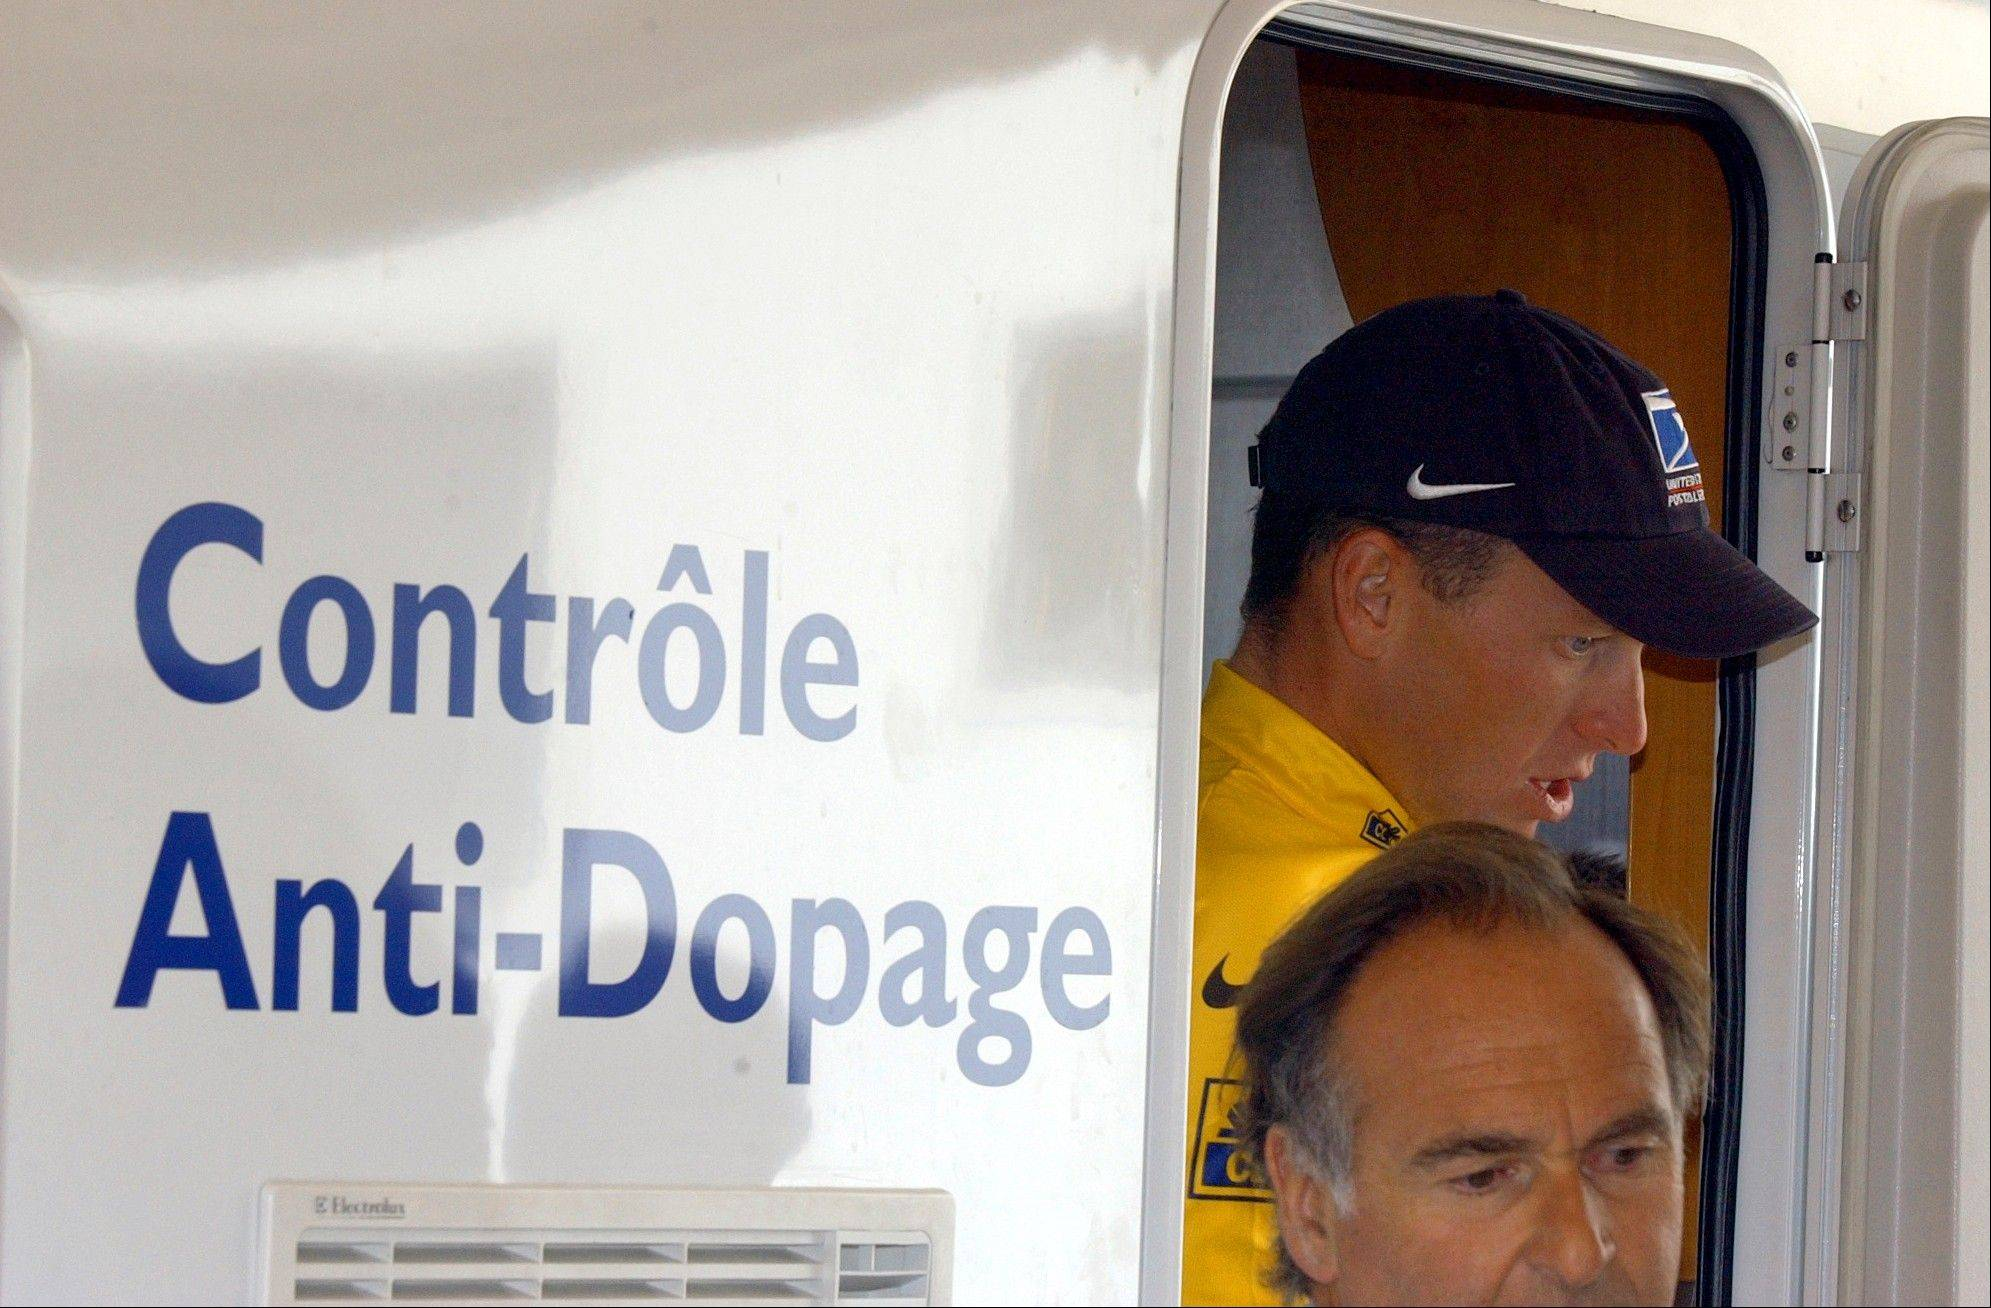 "Cyclist Lance Armstrong walks out of the Tour de France's anti-doping control bus after the 16th stage of the Tour de France cycling race between Les Deux Alpes and La Plagne. The U.S. Anti-Doping Agency is bringing doping charges against the seven-time Tour de France winner, questioning how he achieved those famous cycling victories. Armstrong, who retired from cycling last year, could face a lifetime ban from the sport if he is found to have used performance-enhancing drugs. He maintained his innocence, saying: ""I have never doped."""